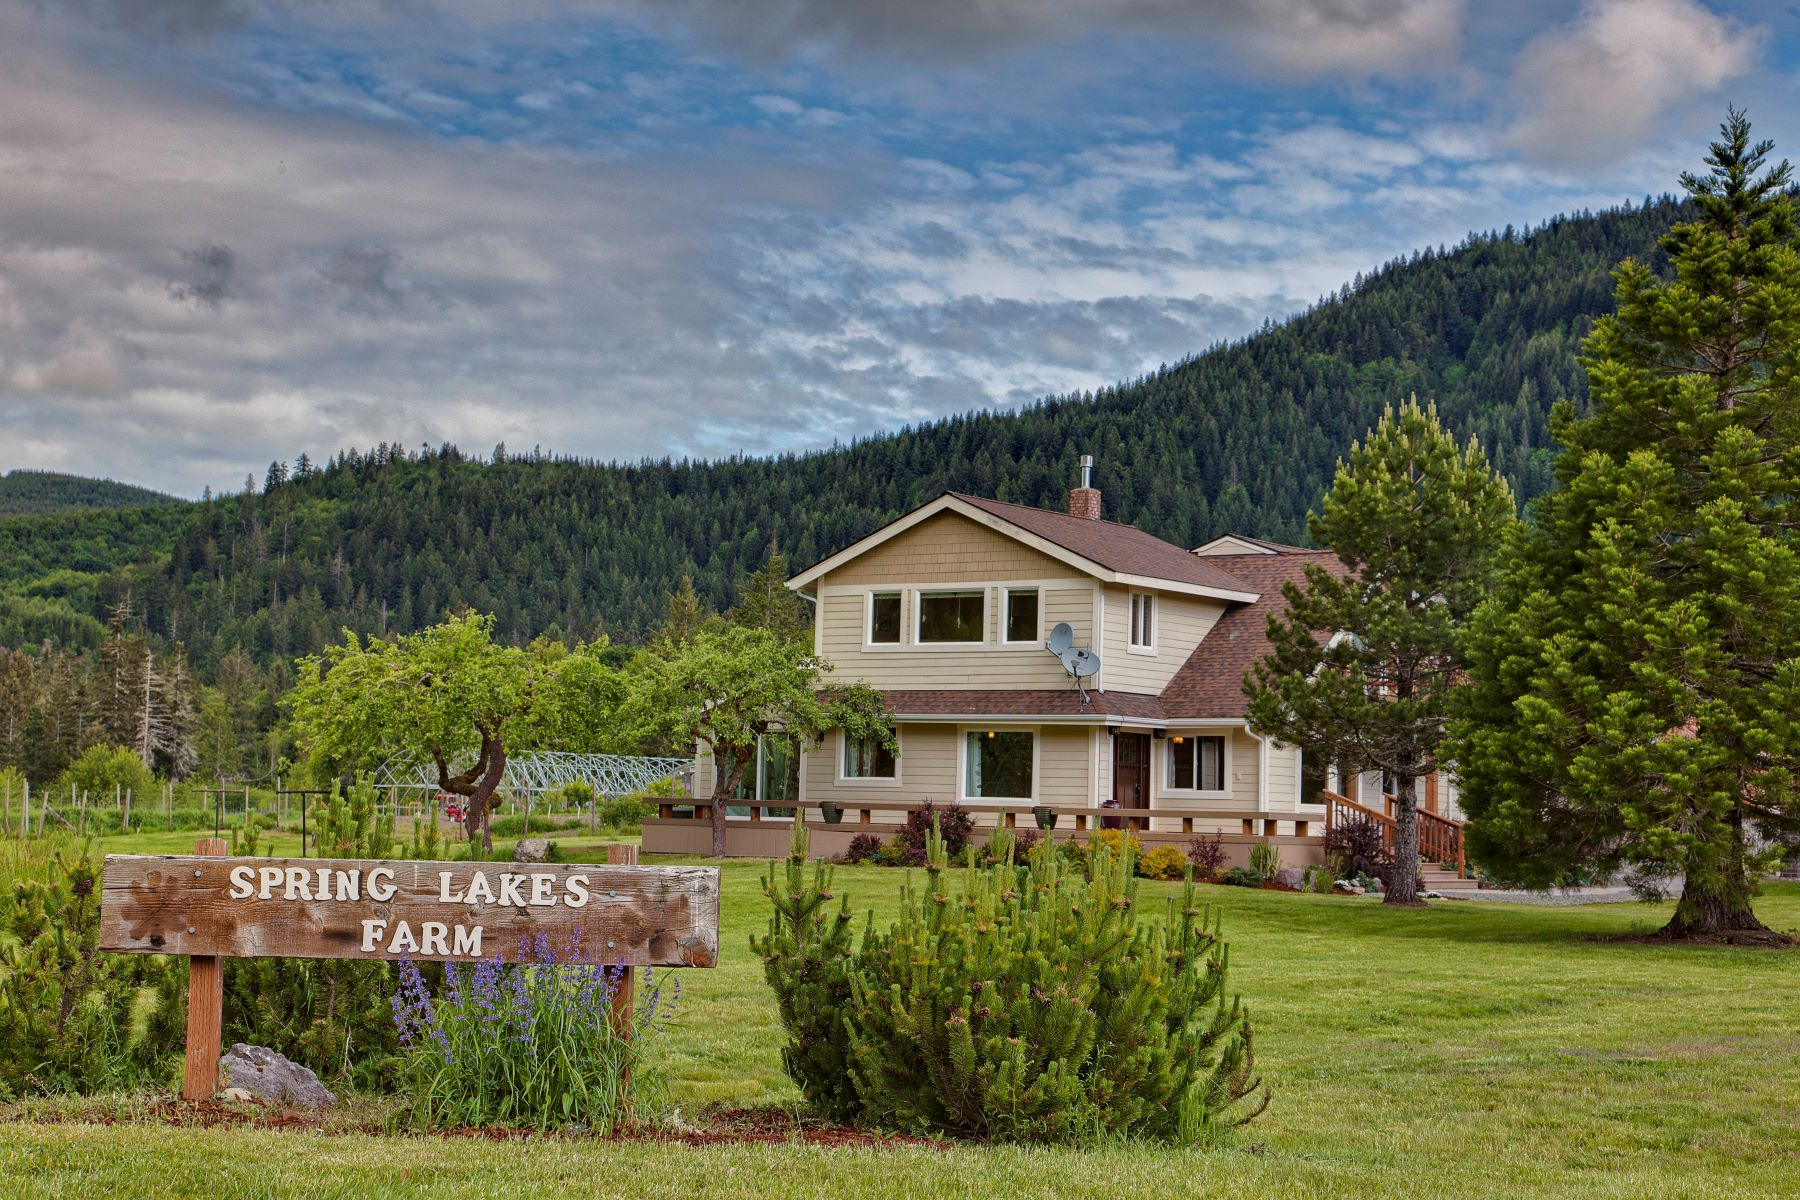 Casa Unifamiliar por un Venta en Spring Lakes Farm 237477 W Highway 101 Port Angeles, Washington 98363 Estados Unidos